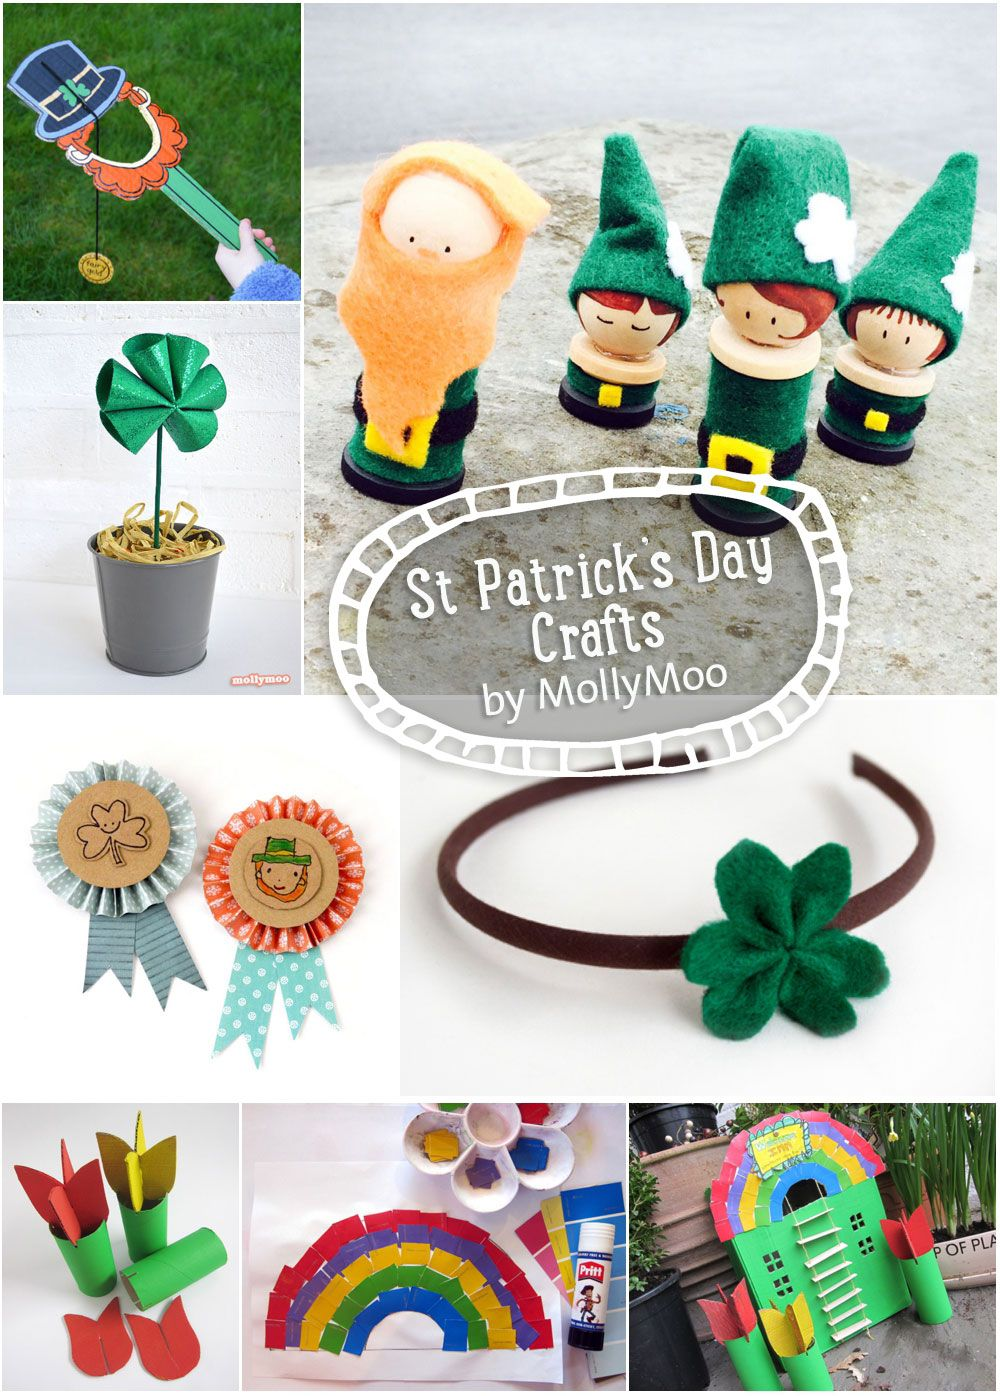 St pattys day crafts - Round Up Of St Patrick S Day Crafts By Mollymoocrafts Com